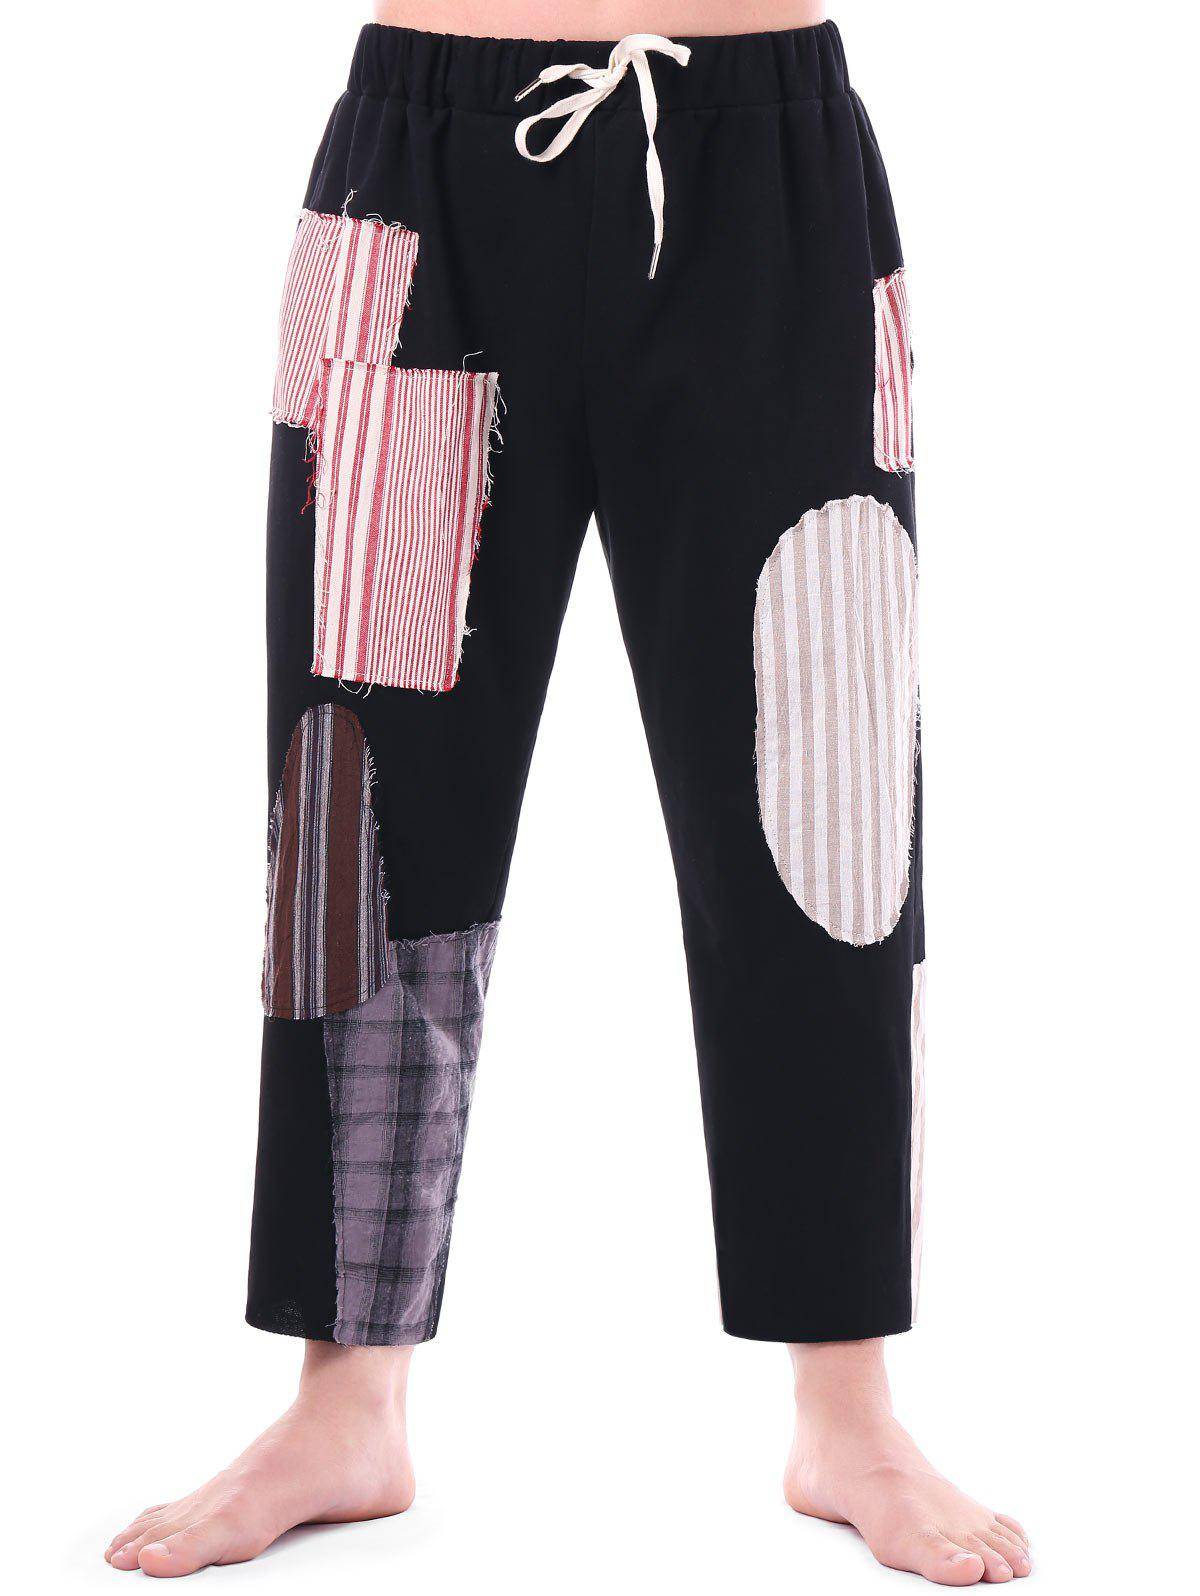 Hot High Rise Drawstring Patched Beggar Pants